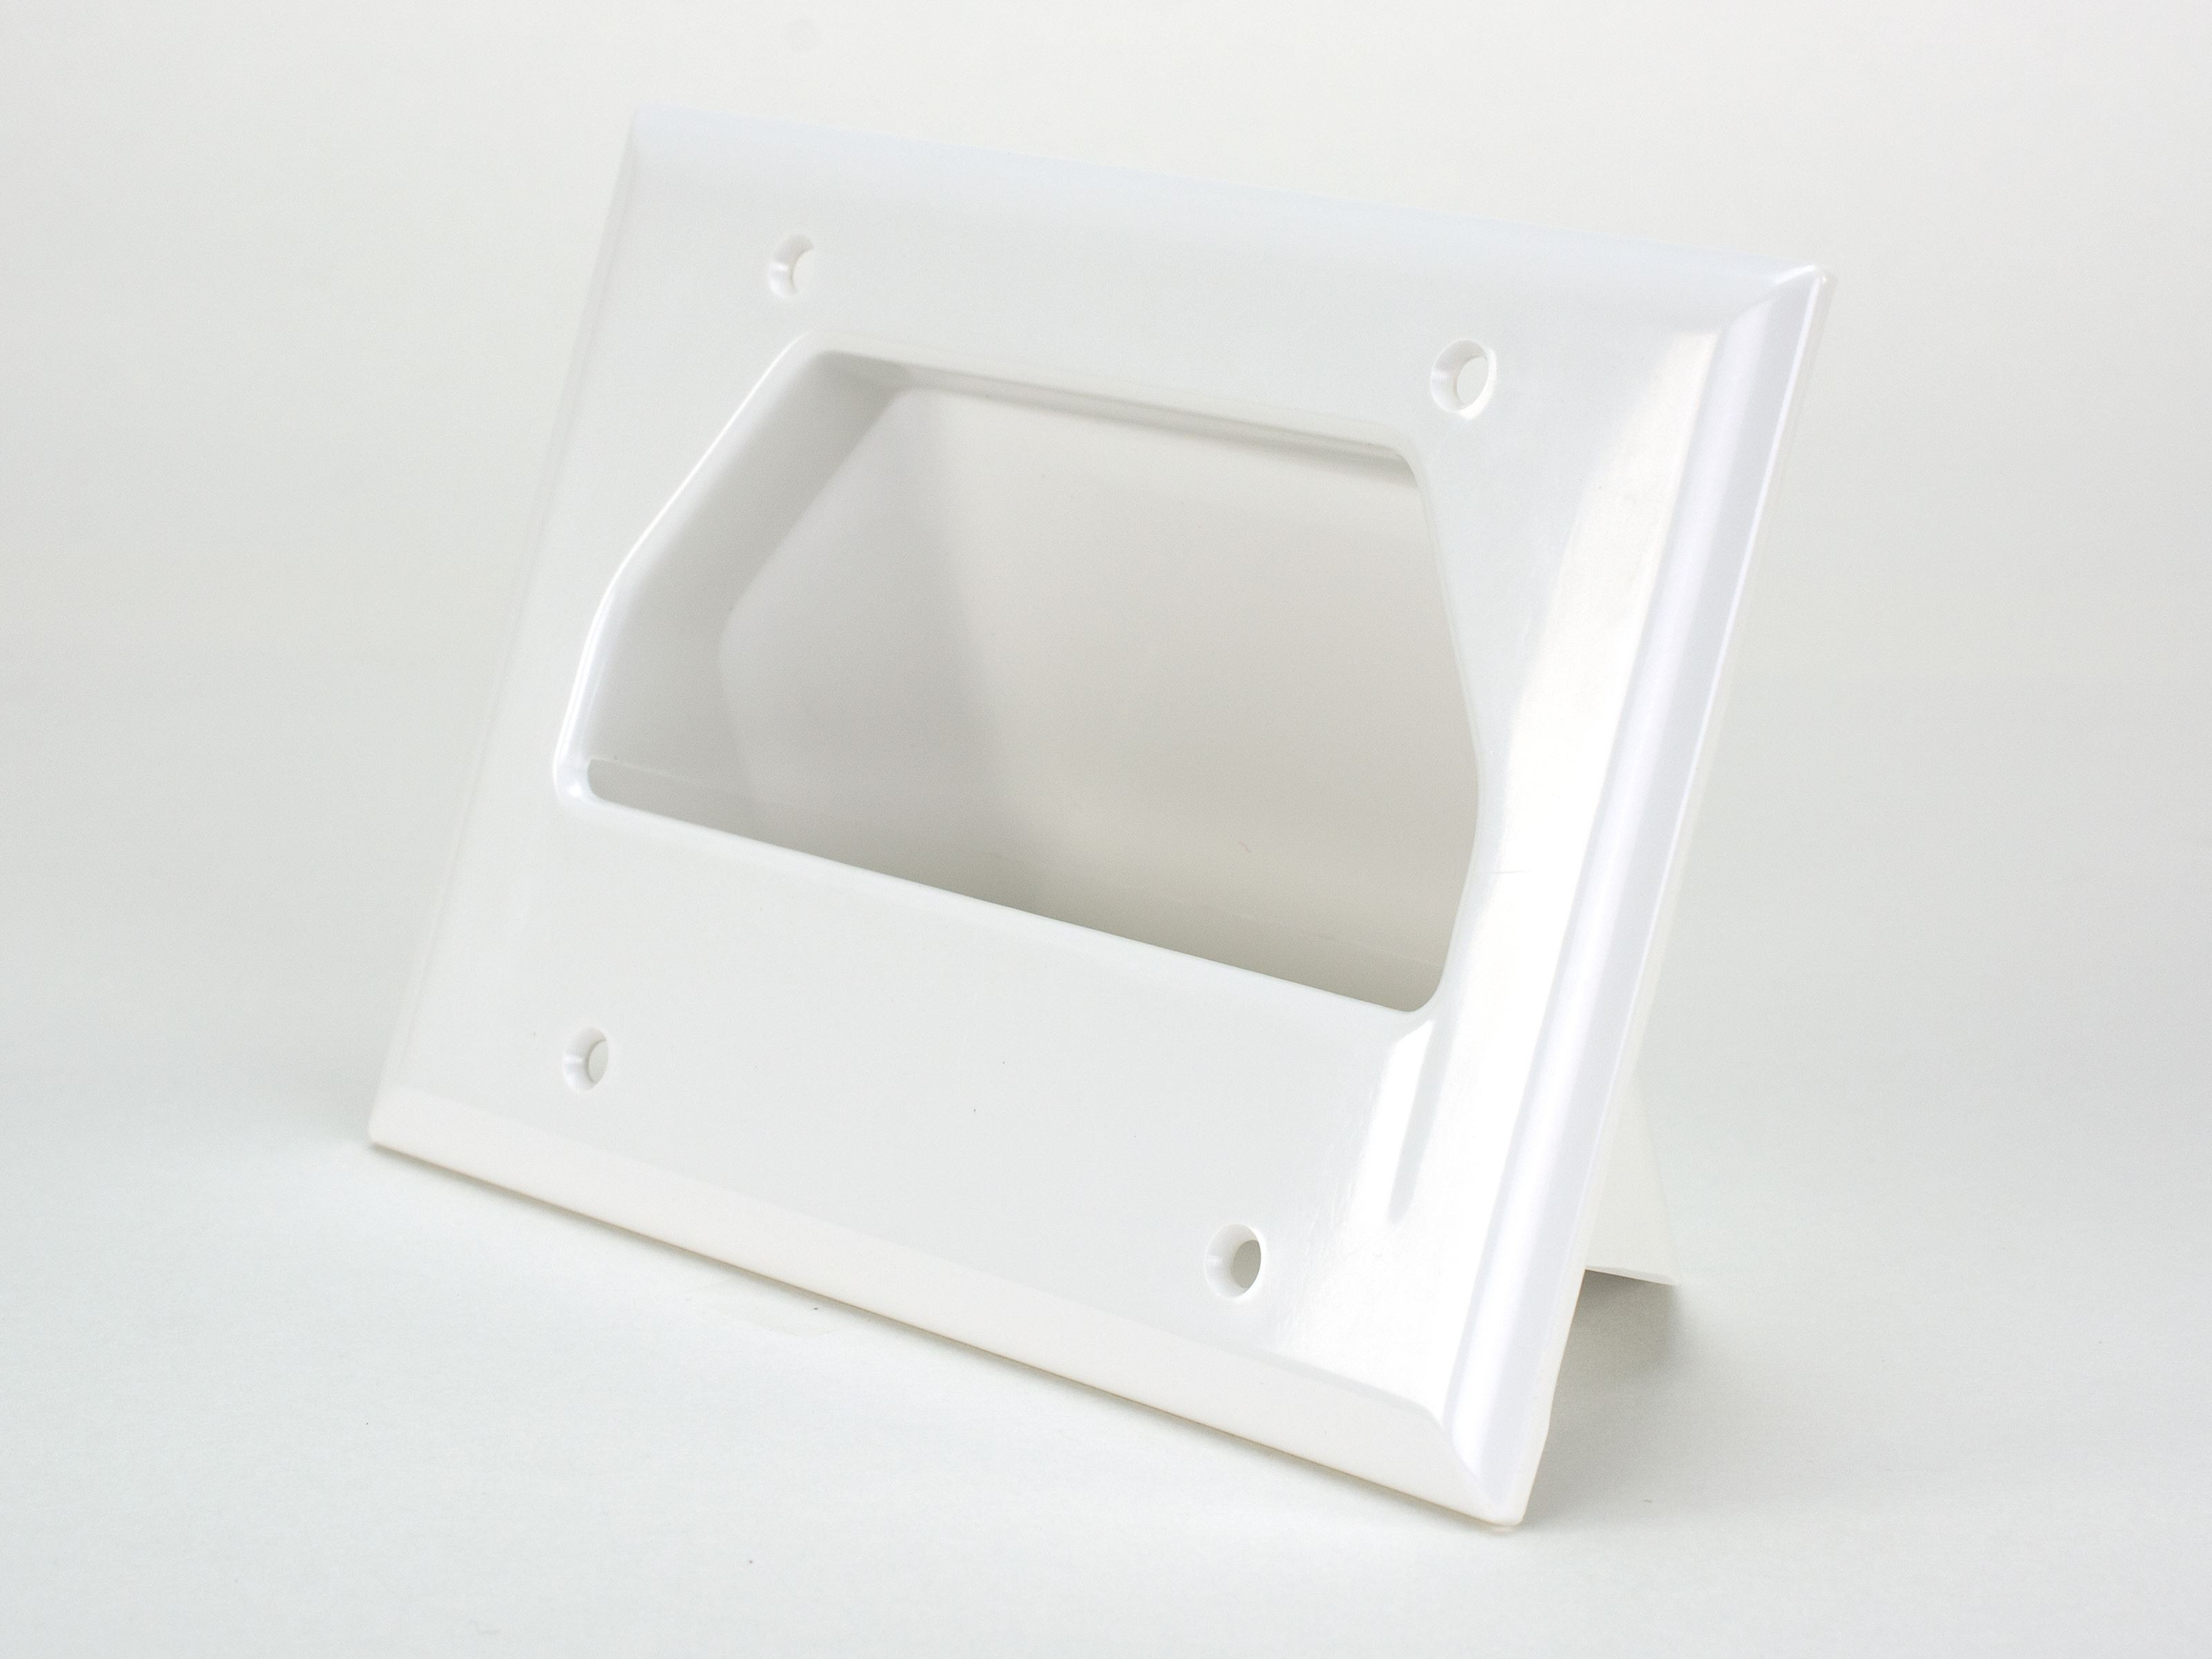 Recessed Wall Plate Scoop White 3 Gang Computer Cable